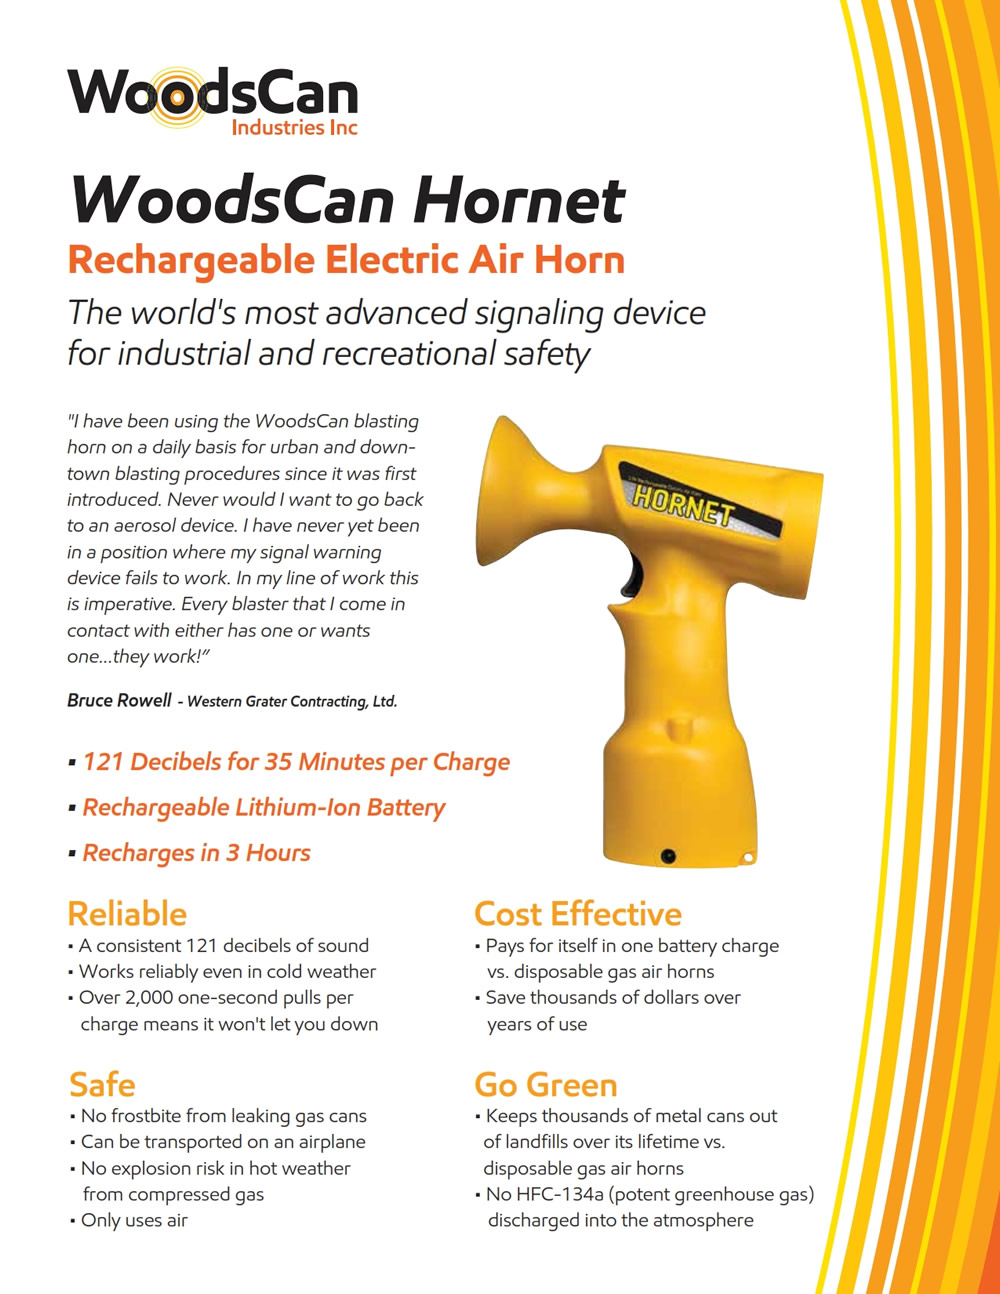 WoodsCan Industries Inc. Developers of the unique WoodsCan Hornet - 14V Rechargeable, Electric Air Horn, download brochure